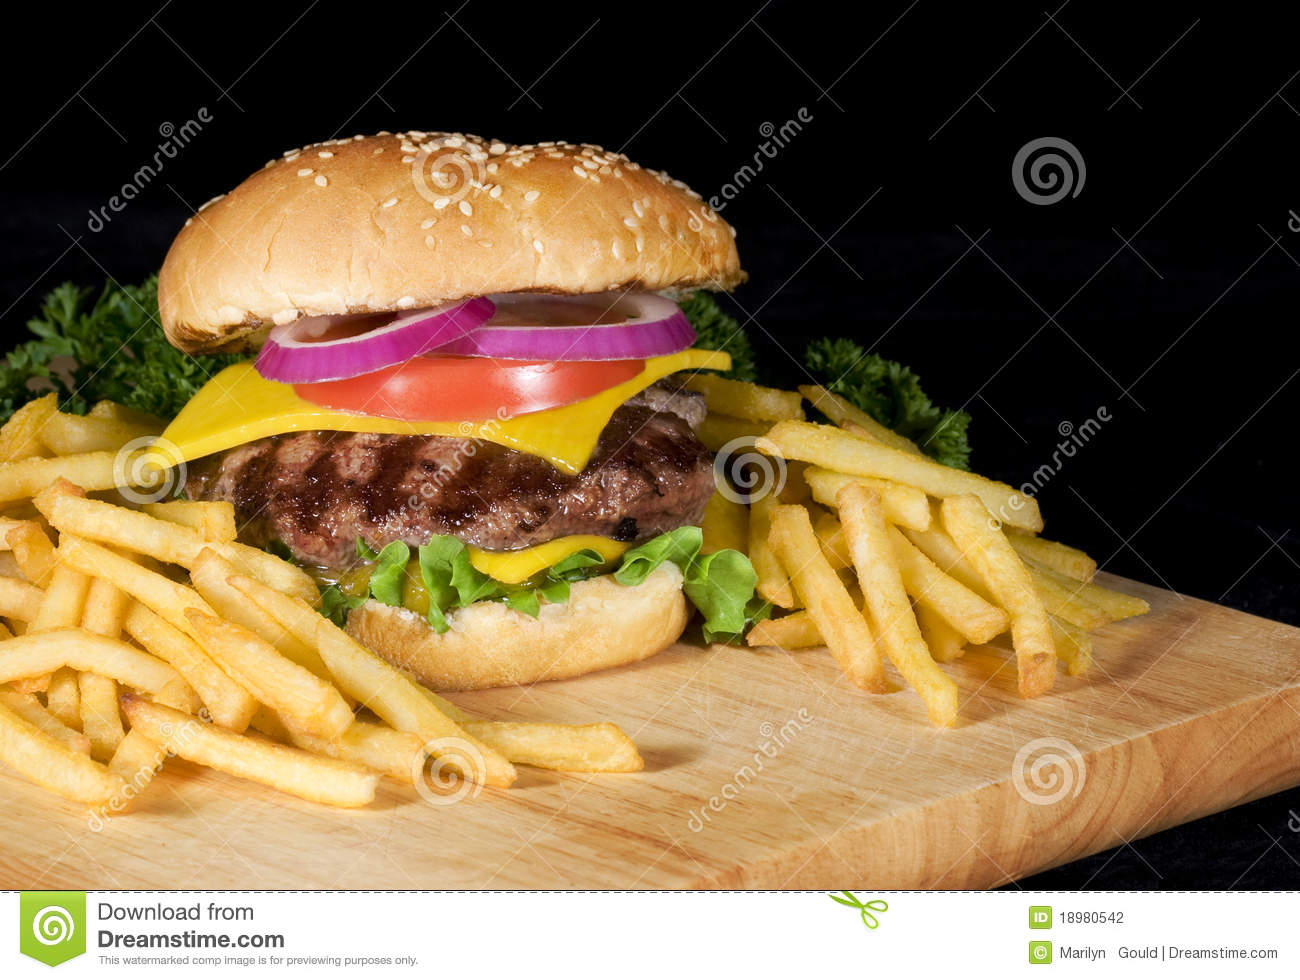 Hamburger & fritture